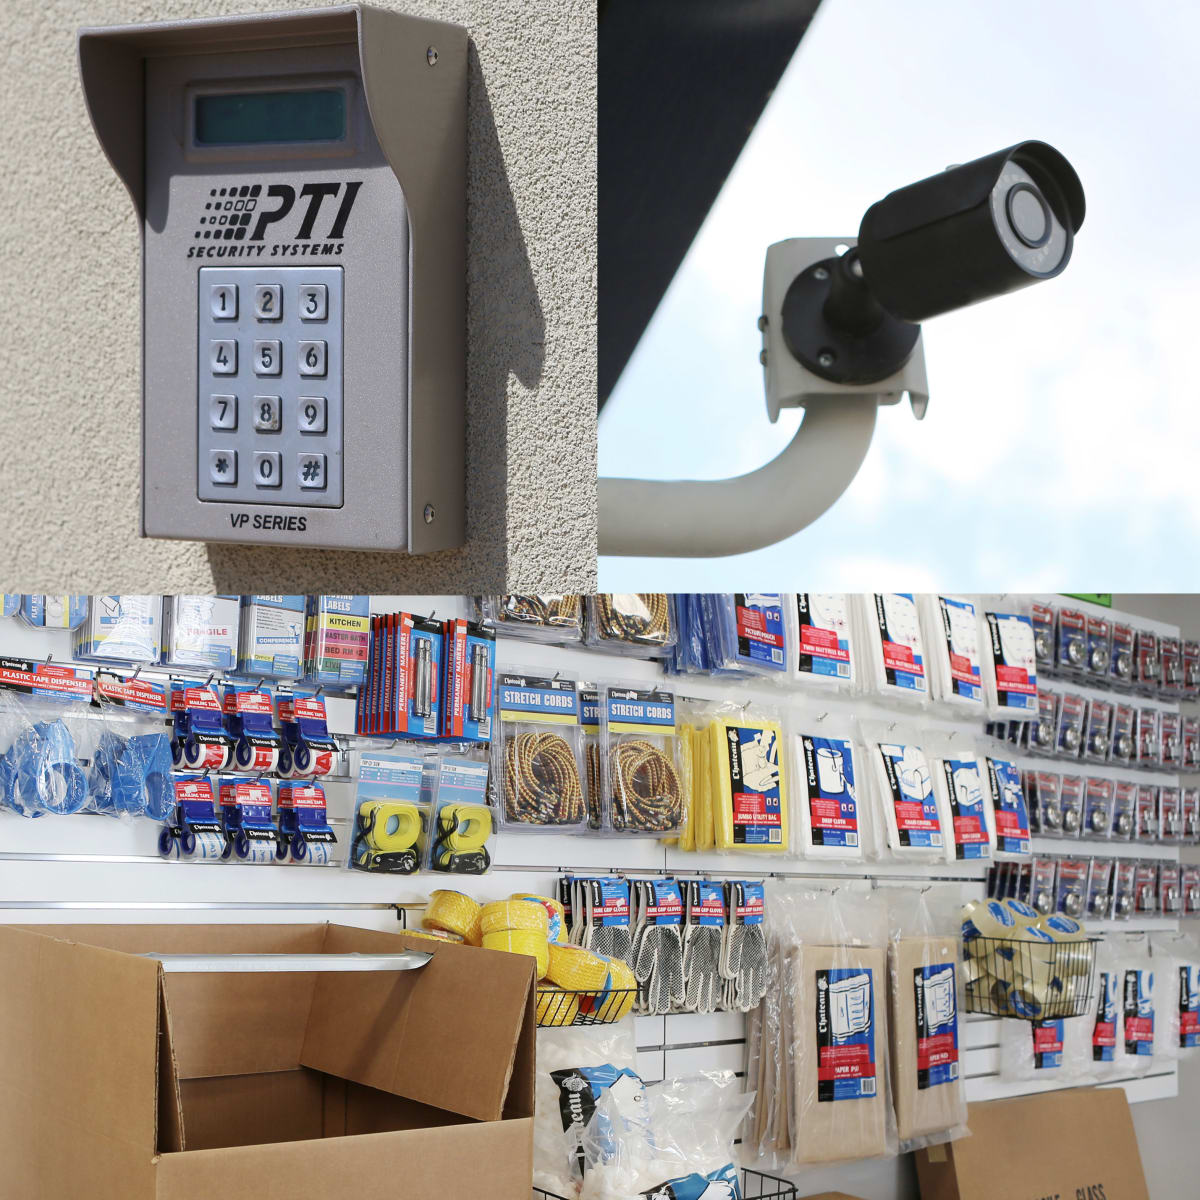 We provide 24 hour security monitoring and sell various moving and packing supplies at StoreSmart Self-Storage in Conway, South Carolina